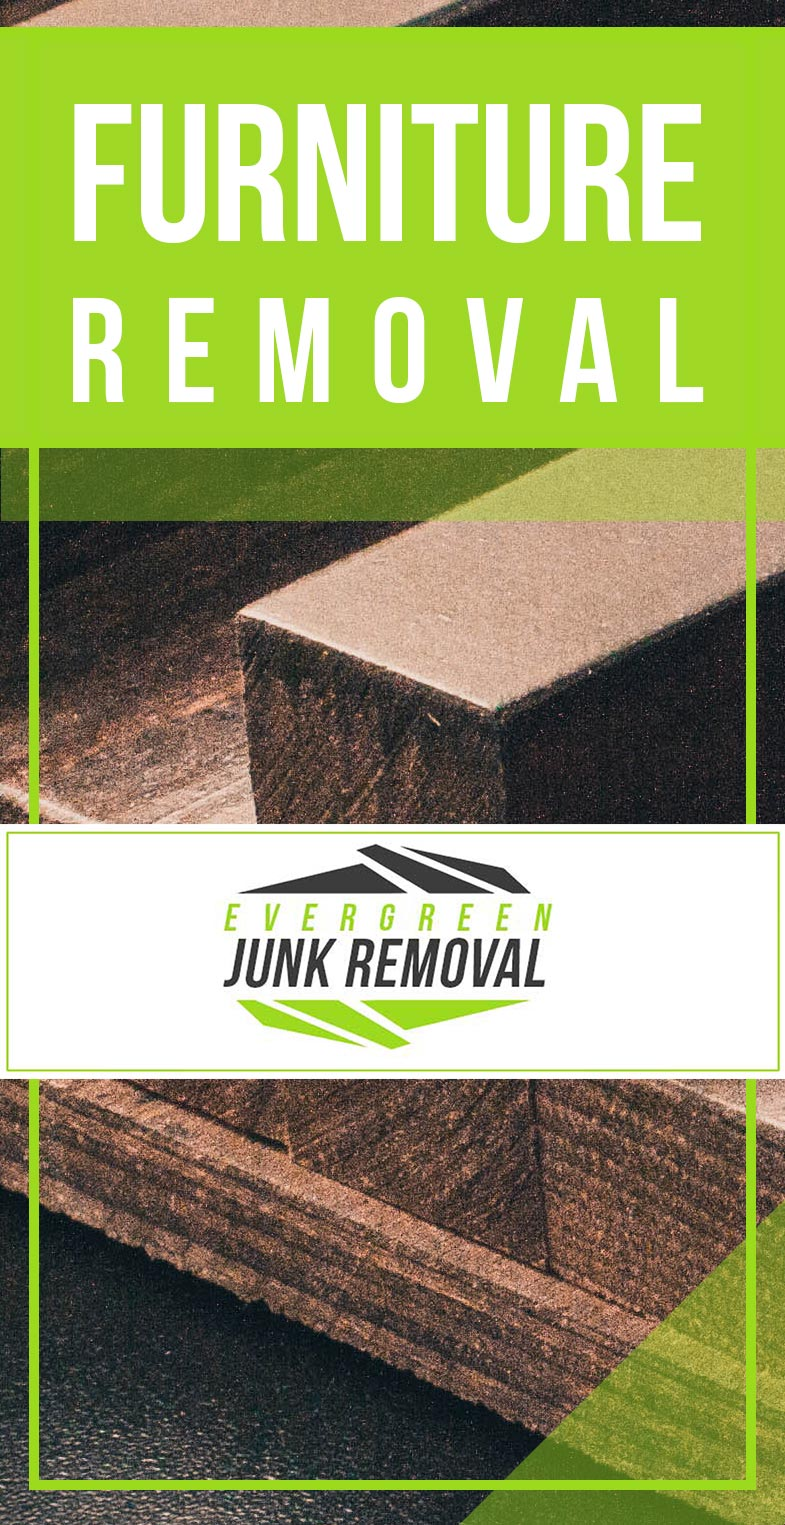 Junk Removal Lake Clarke Shores Furniture Removal